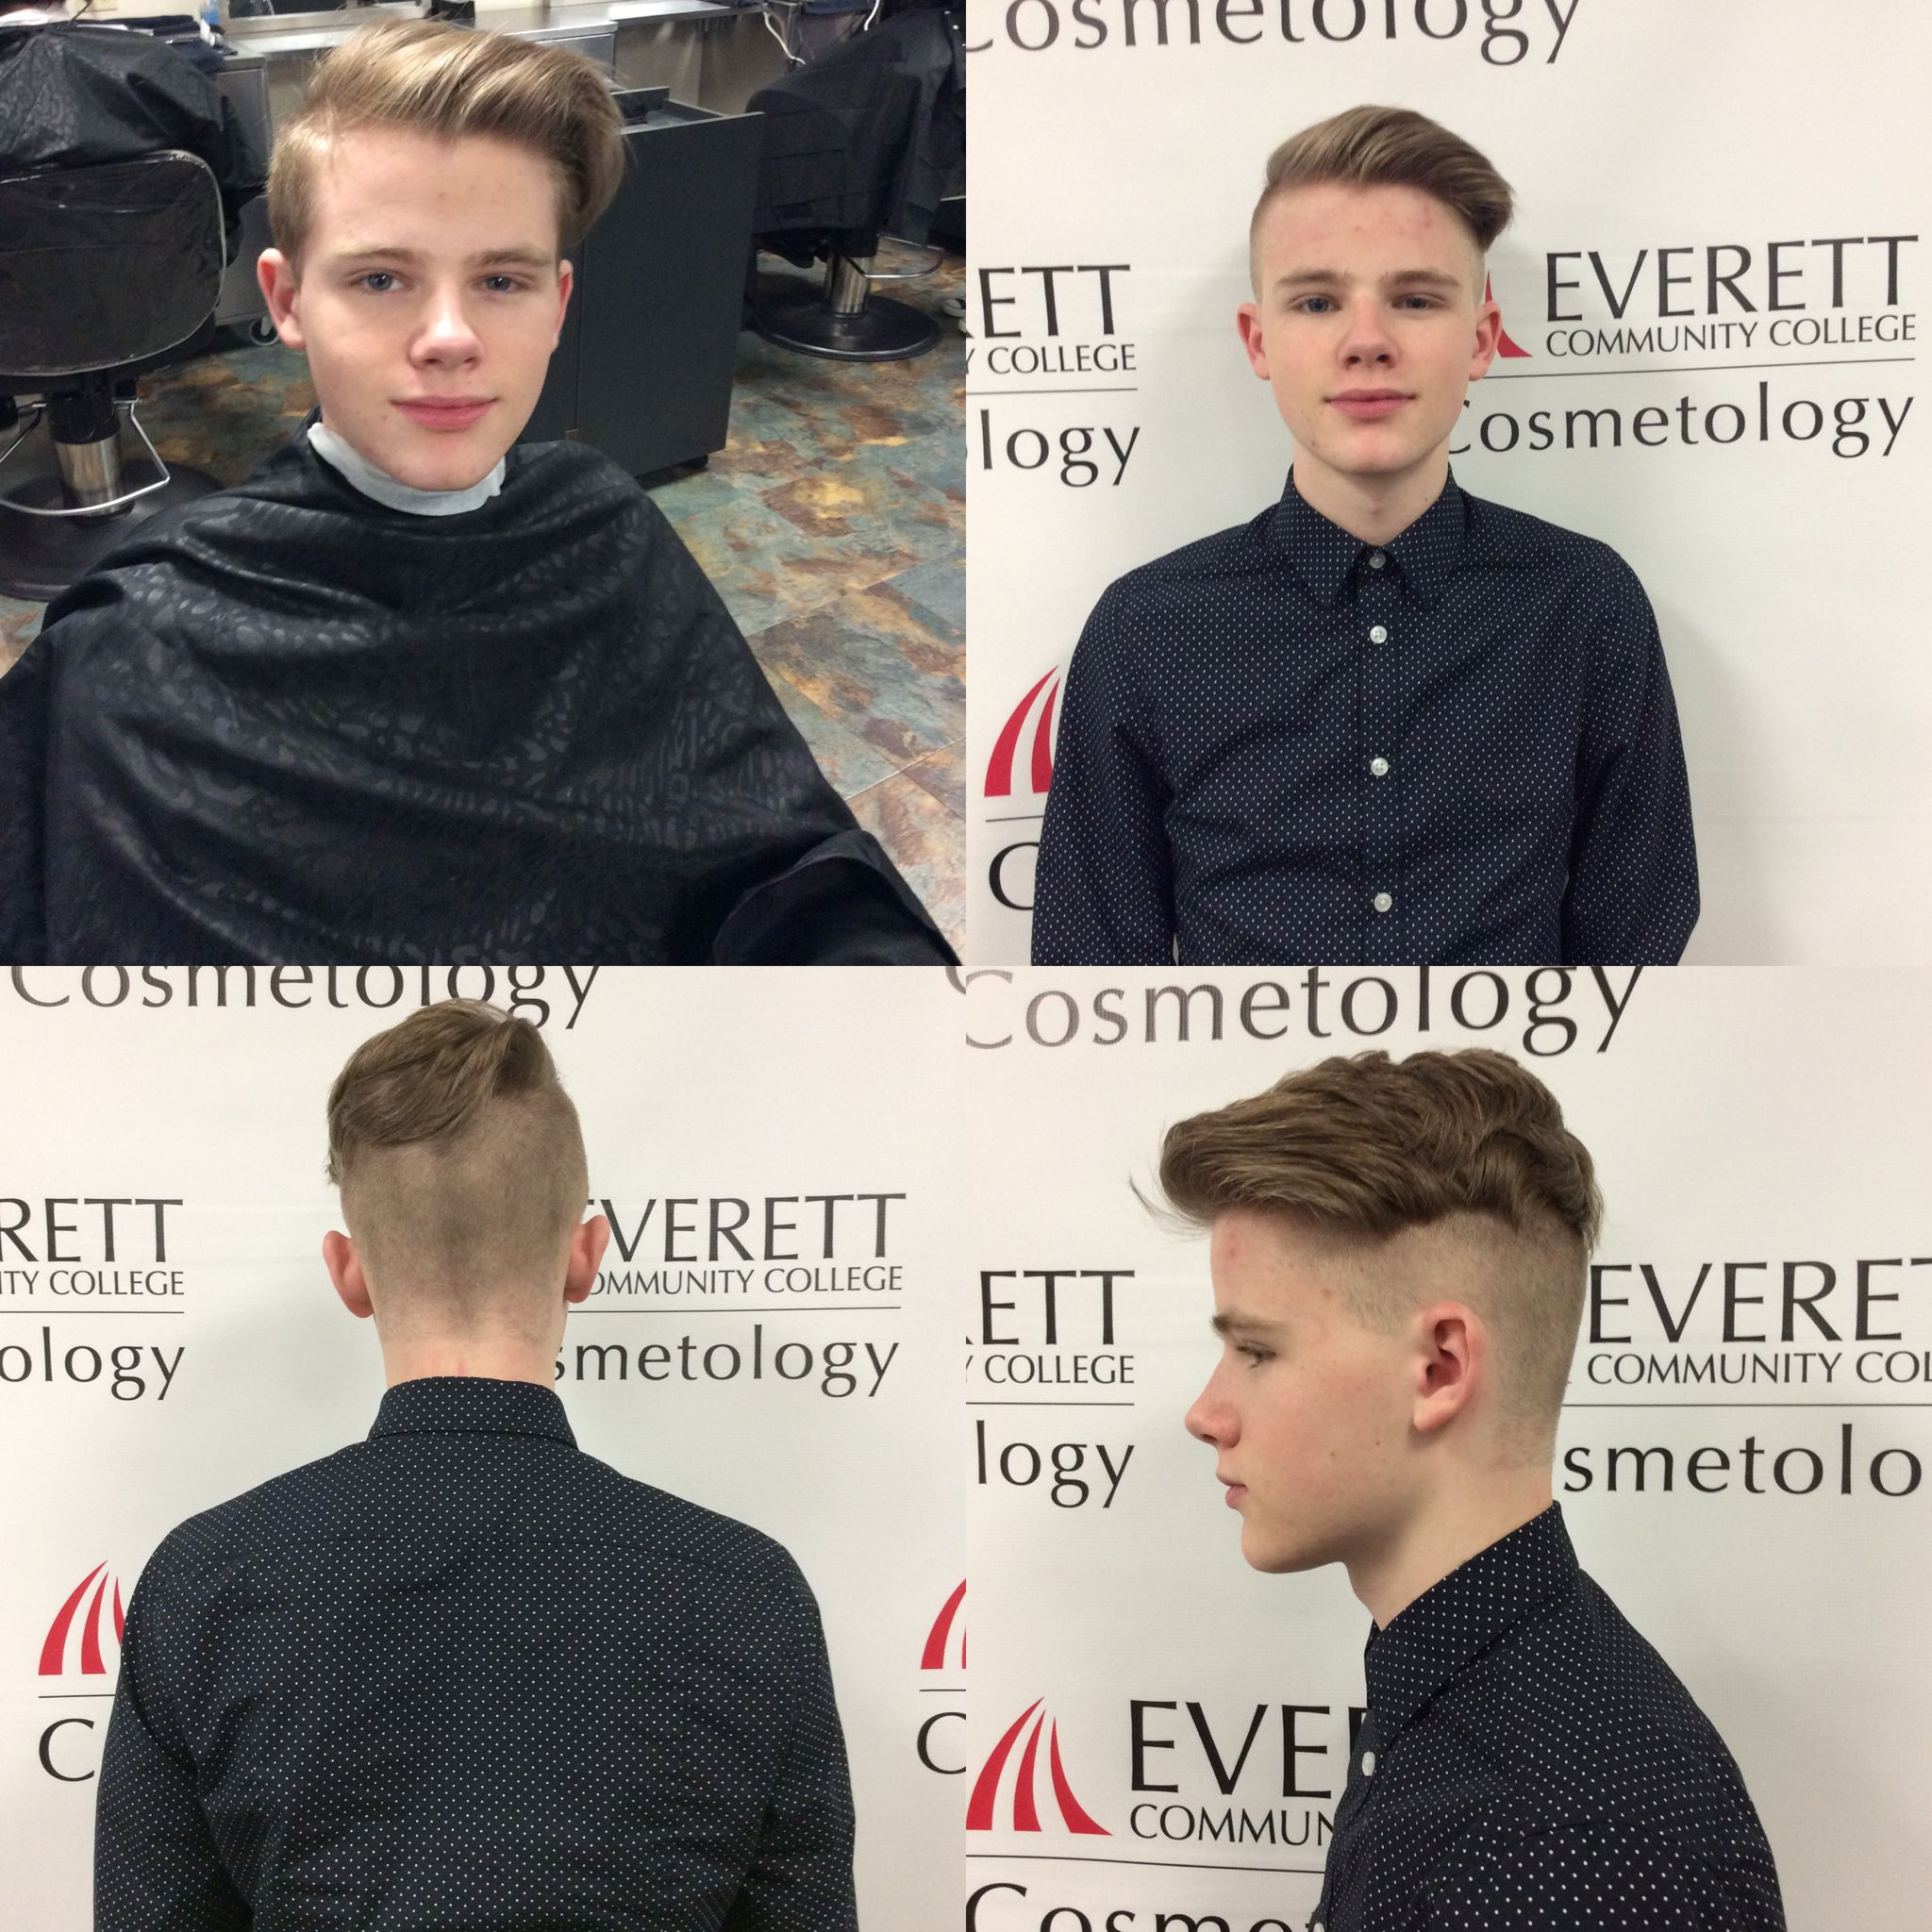 2 17 16 Today I Did A Disconnected Haircut On My Model And Used A 1 And Half Guard On The Sides And Back Kapsels Knappe Jongens Jongens